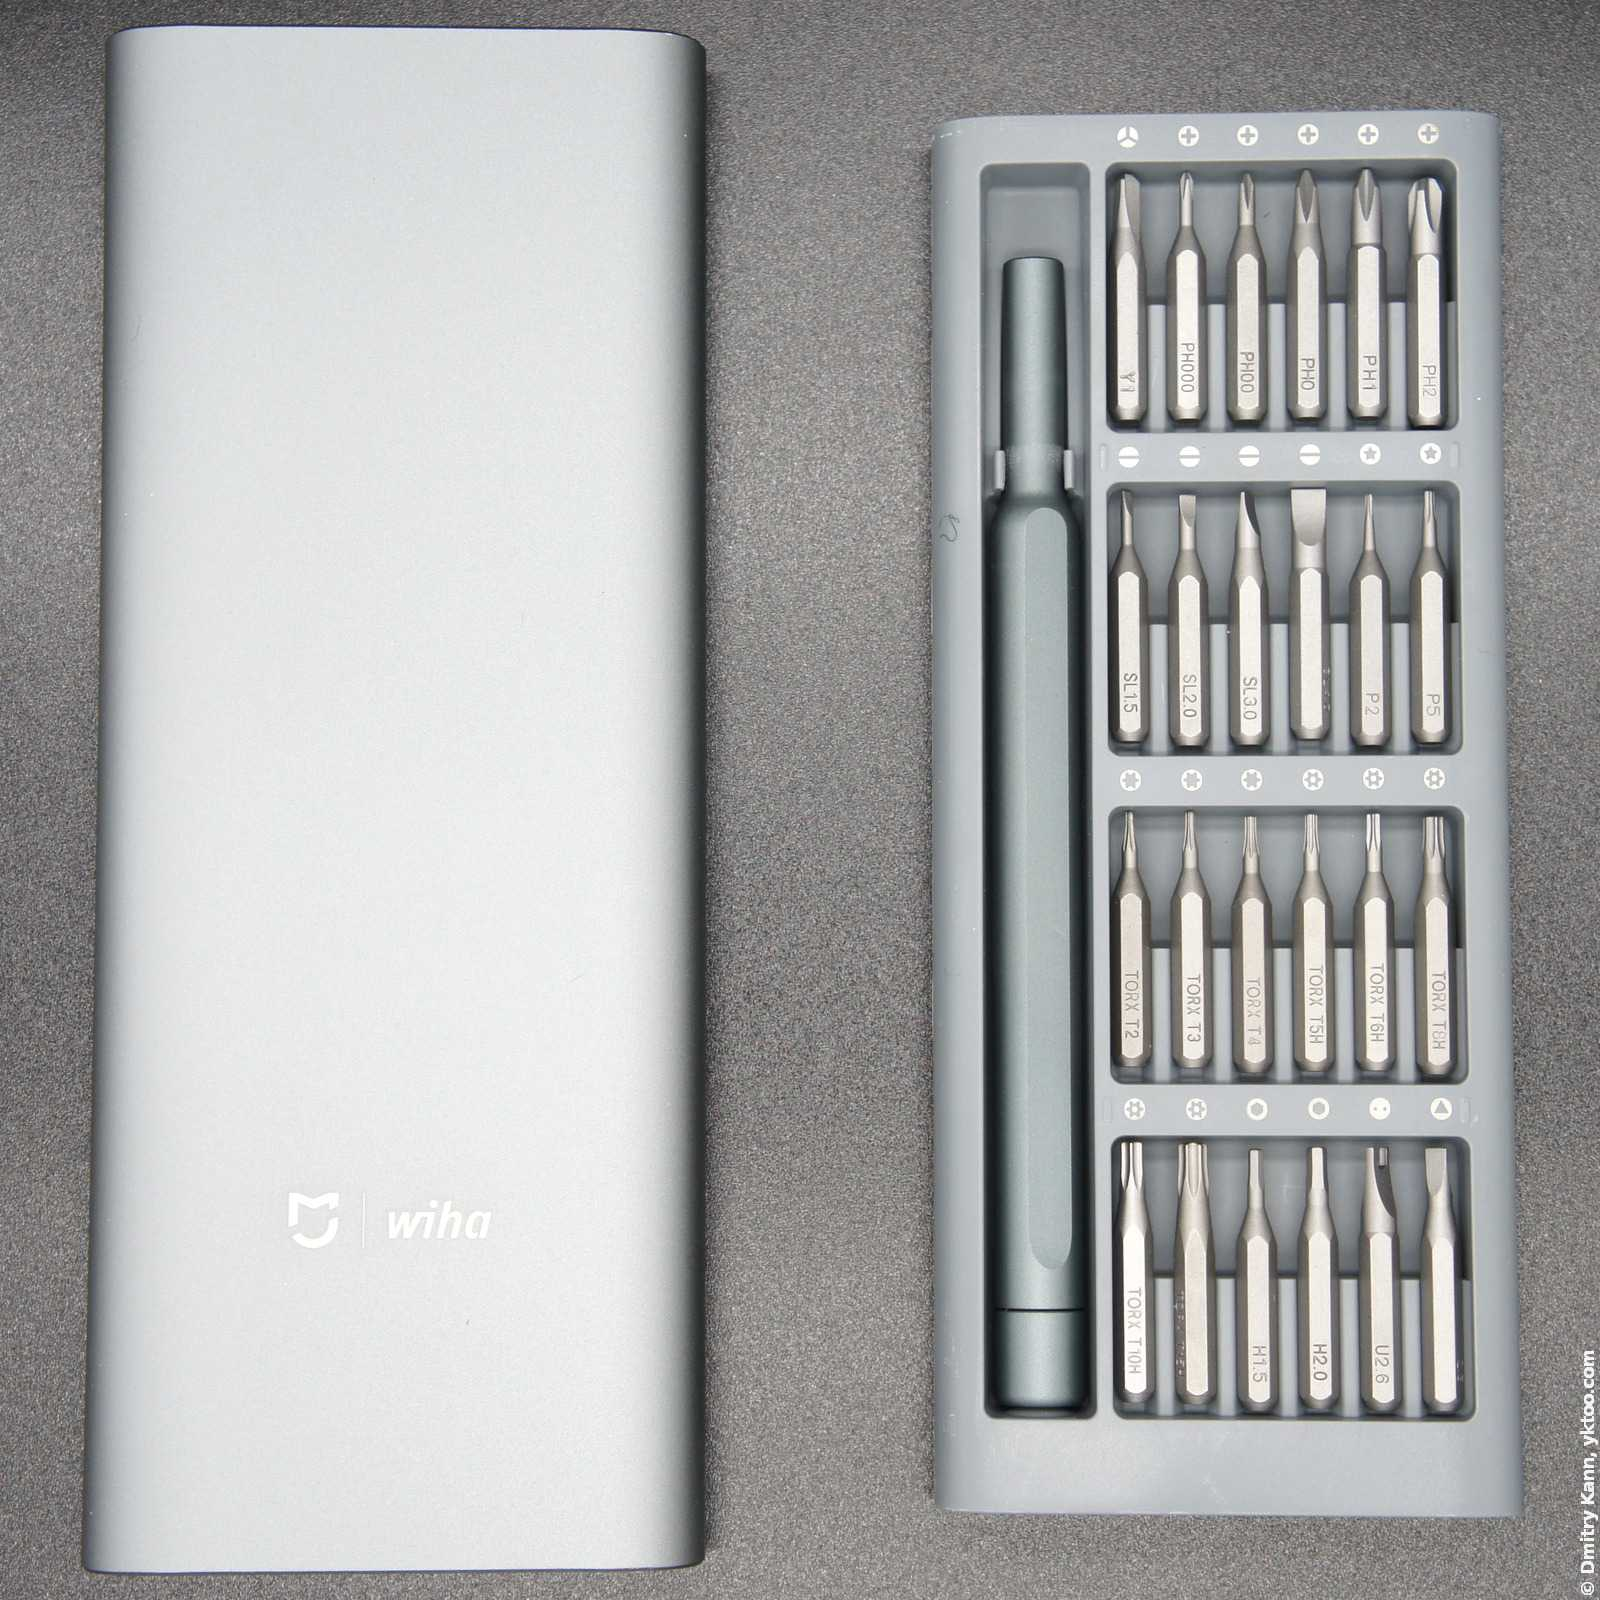 Xiaomi Wiha screwdriver kit.